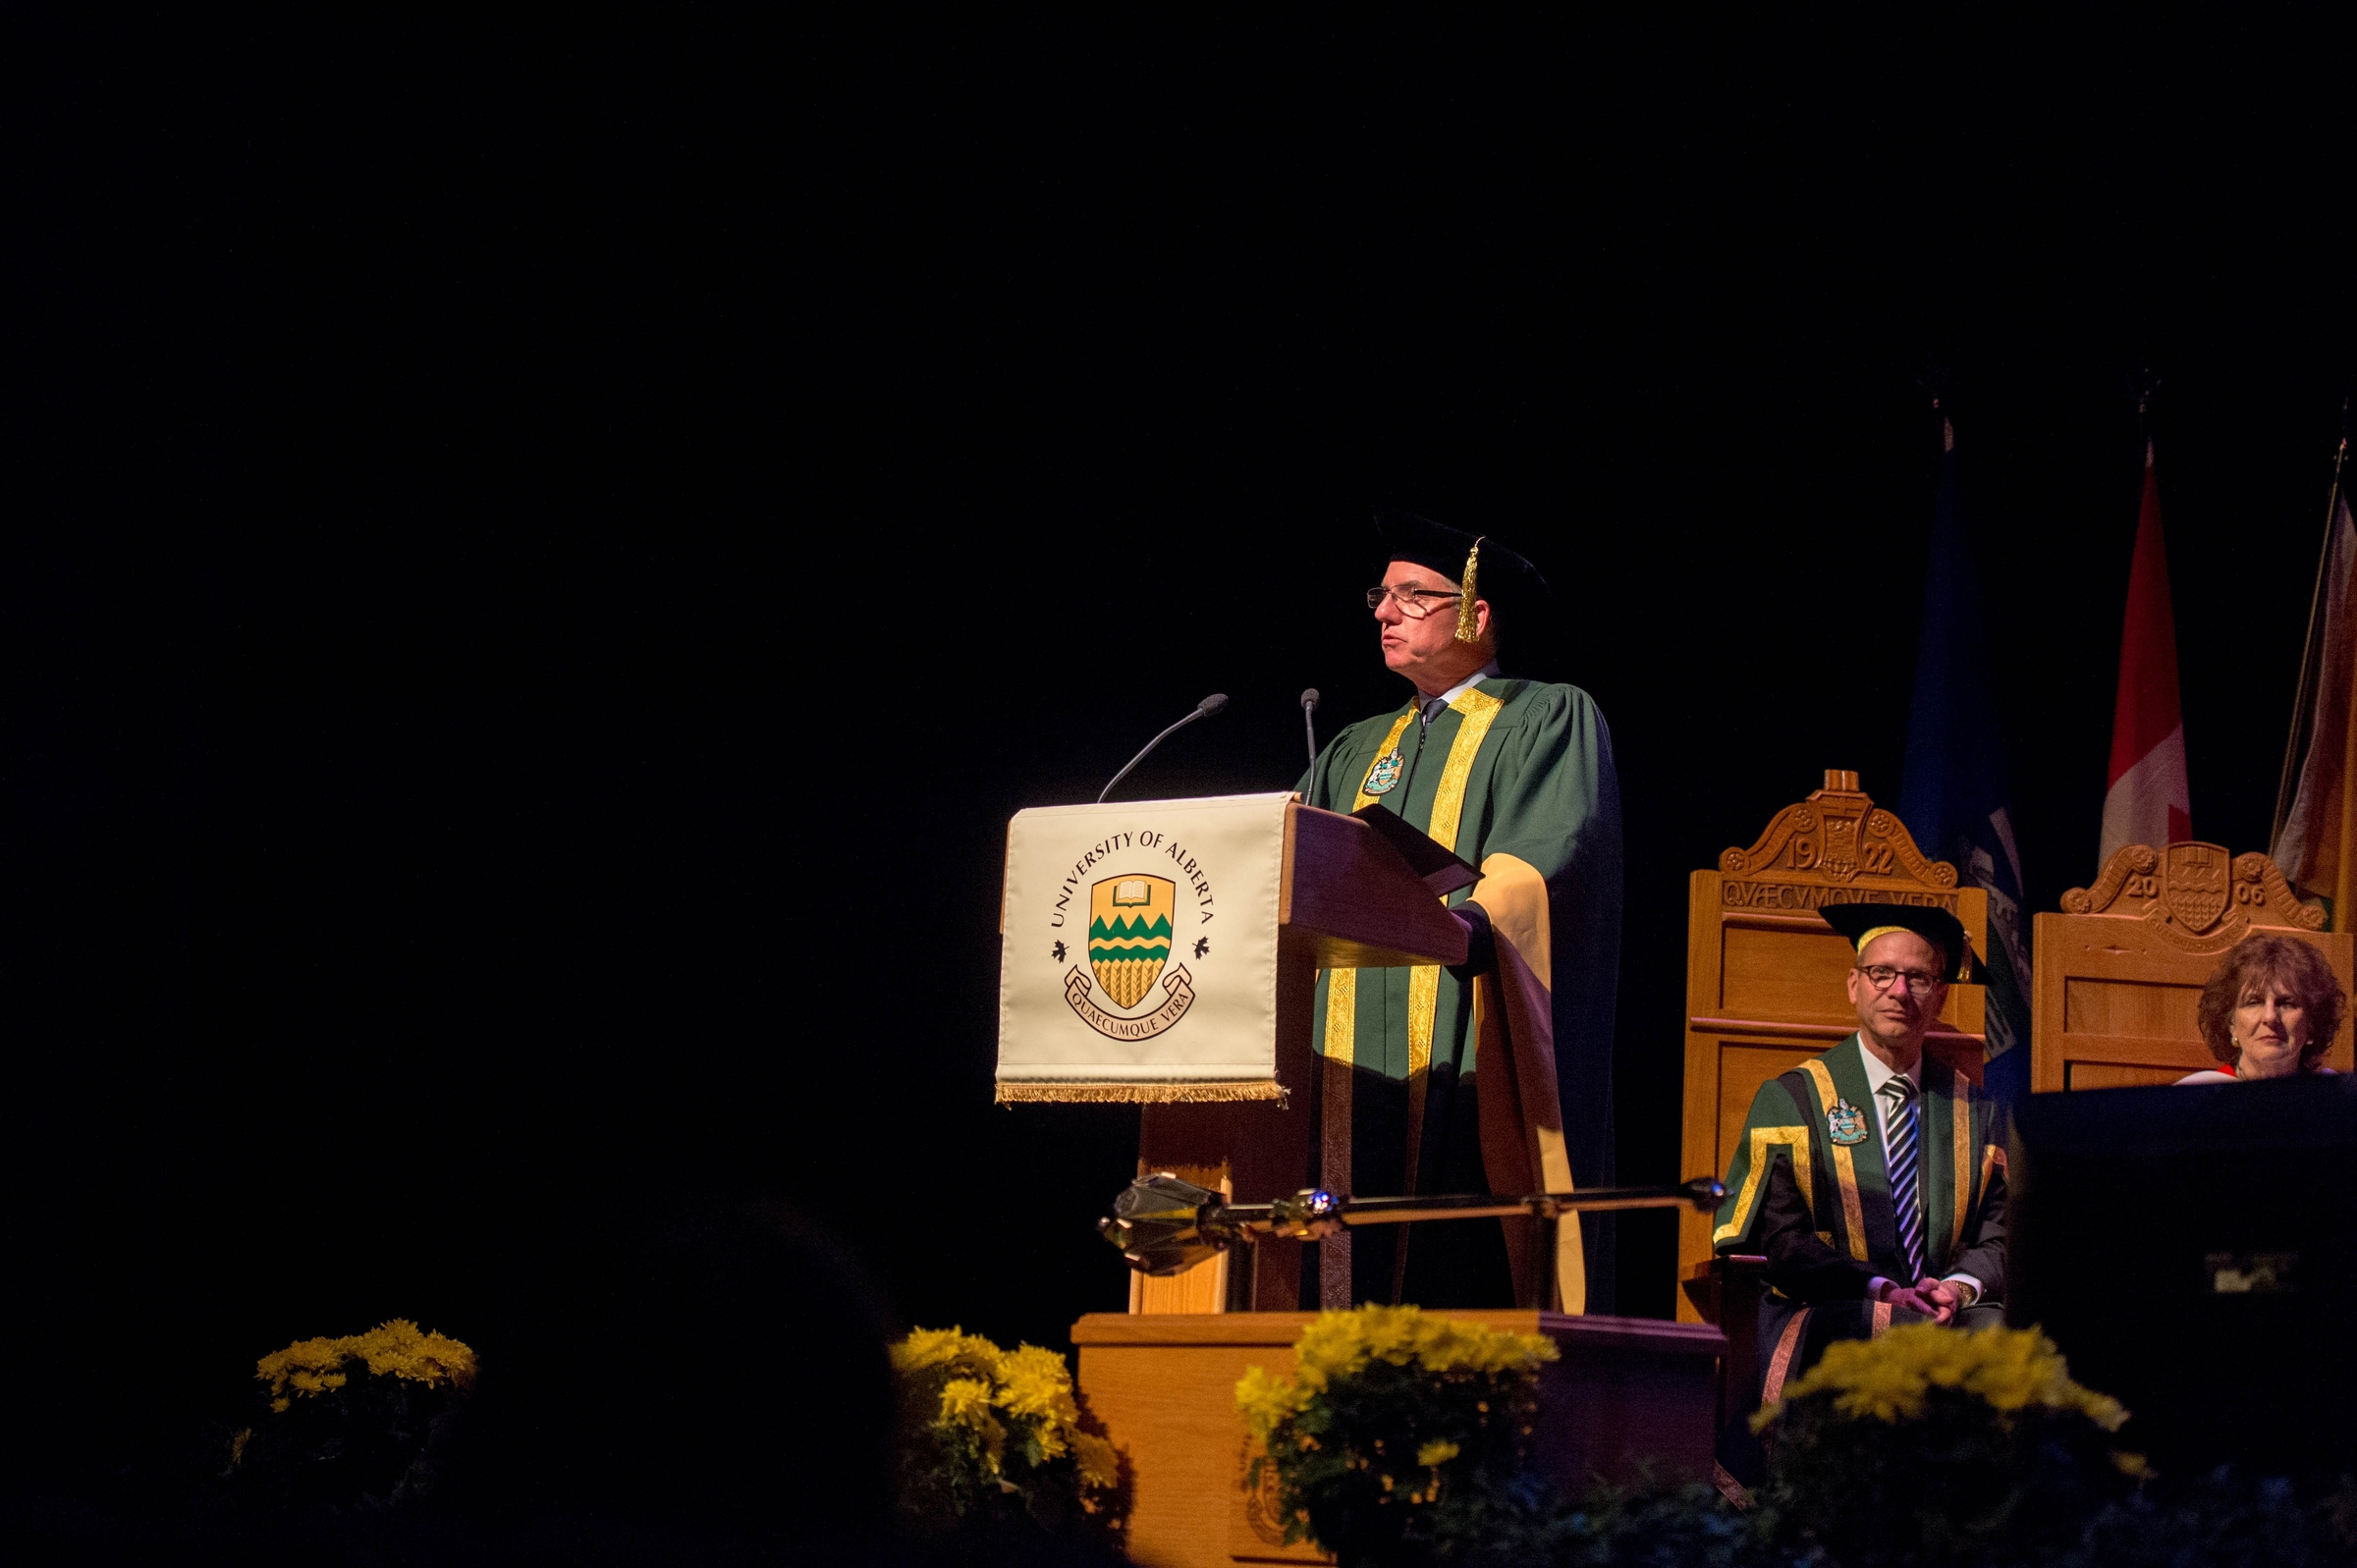 President Turpin presents Mary Robinson as an honorary degree candidate